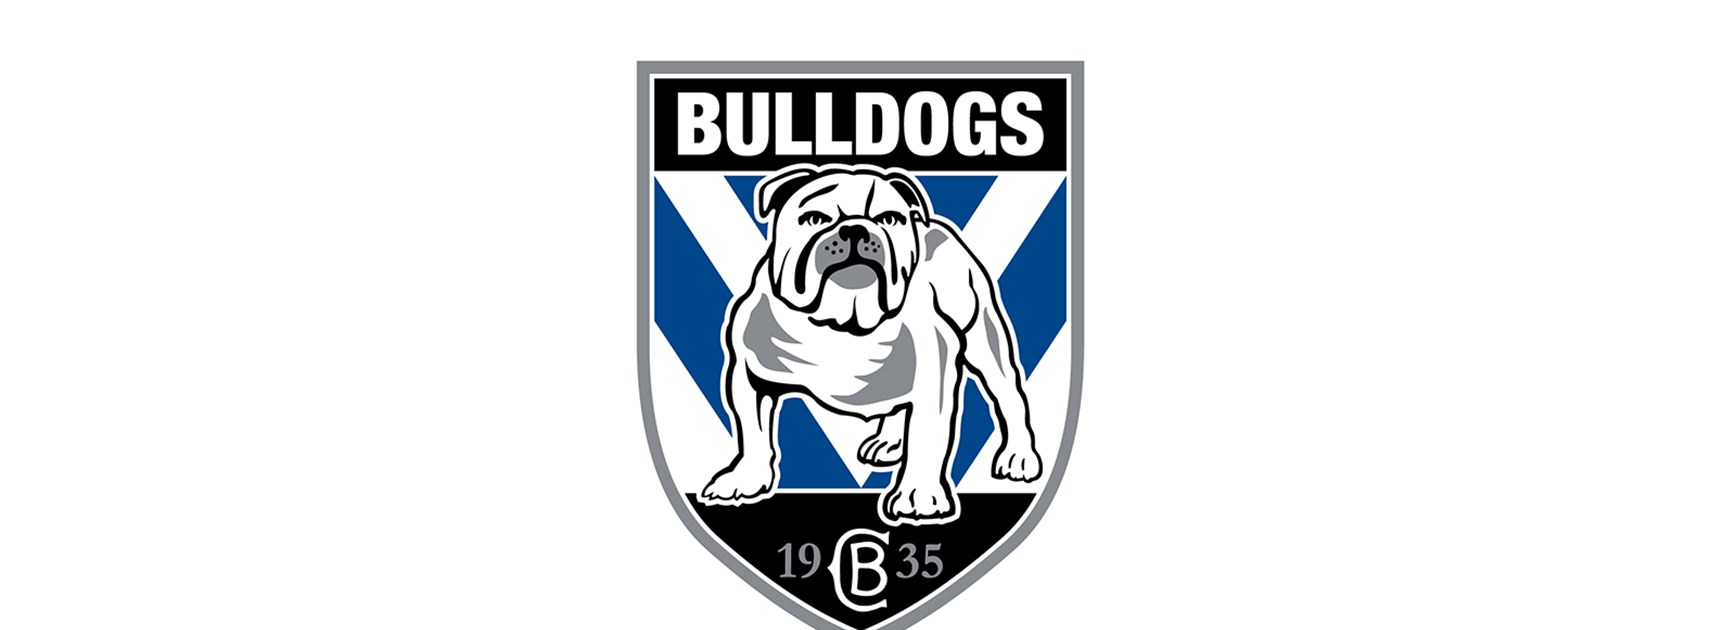 Canterbury-Bankstown Bulldogs.